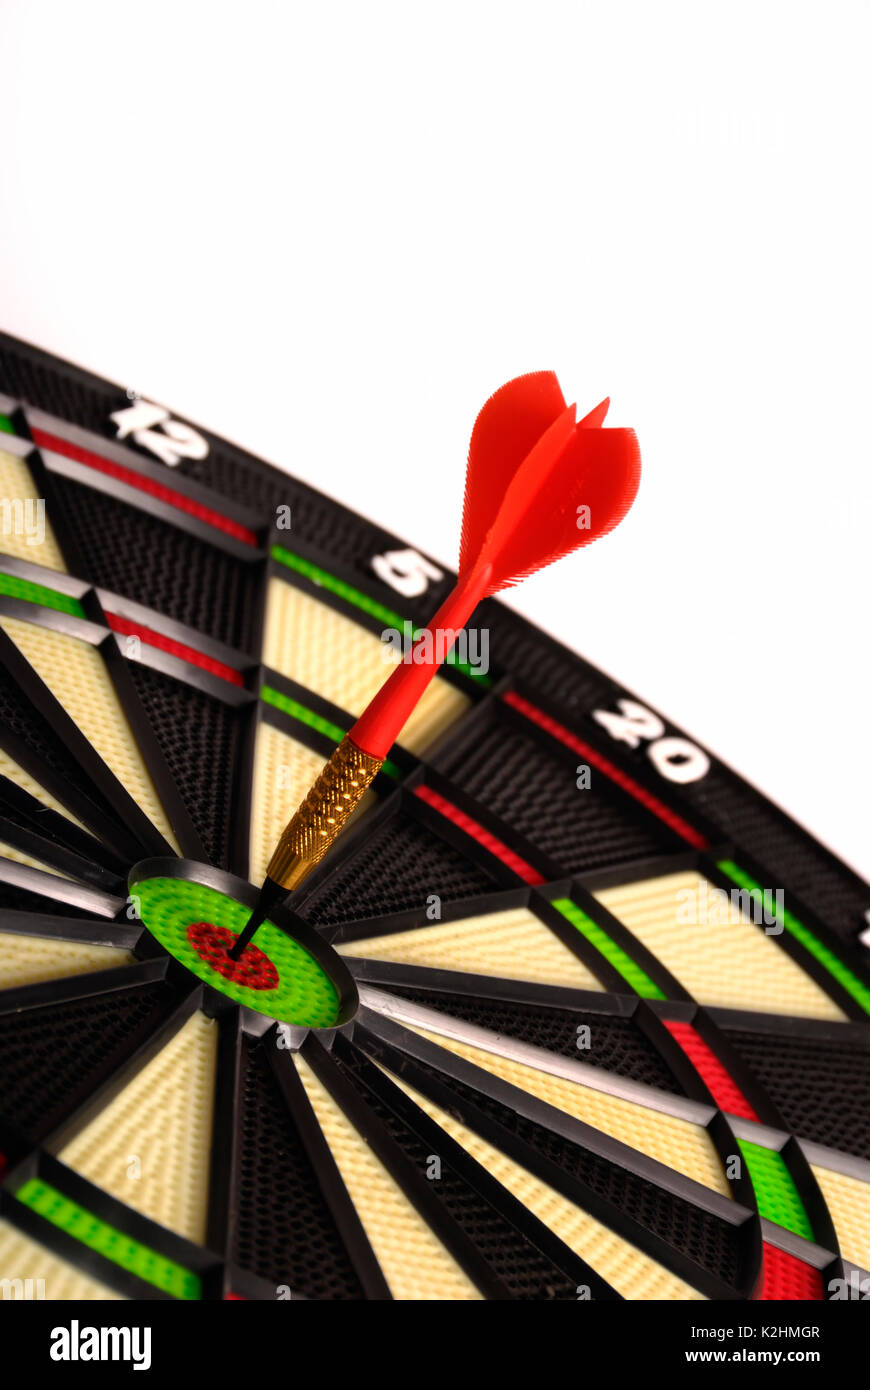 red dart hitting the bull's eye on a target - Stock Image